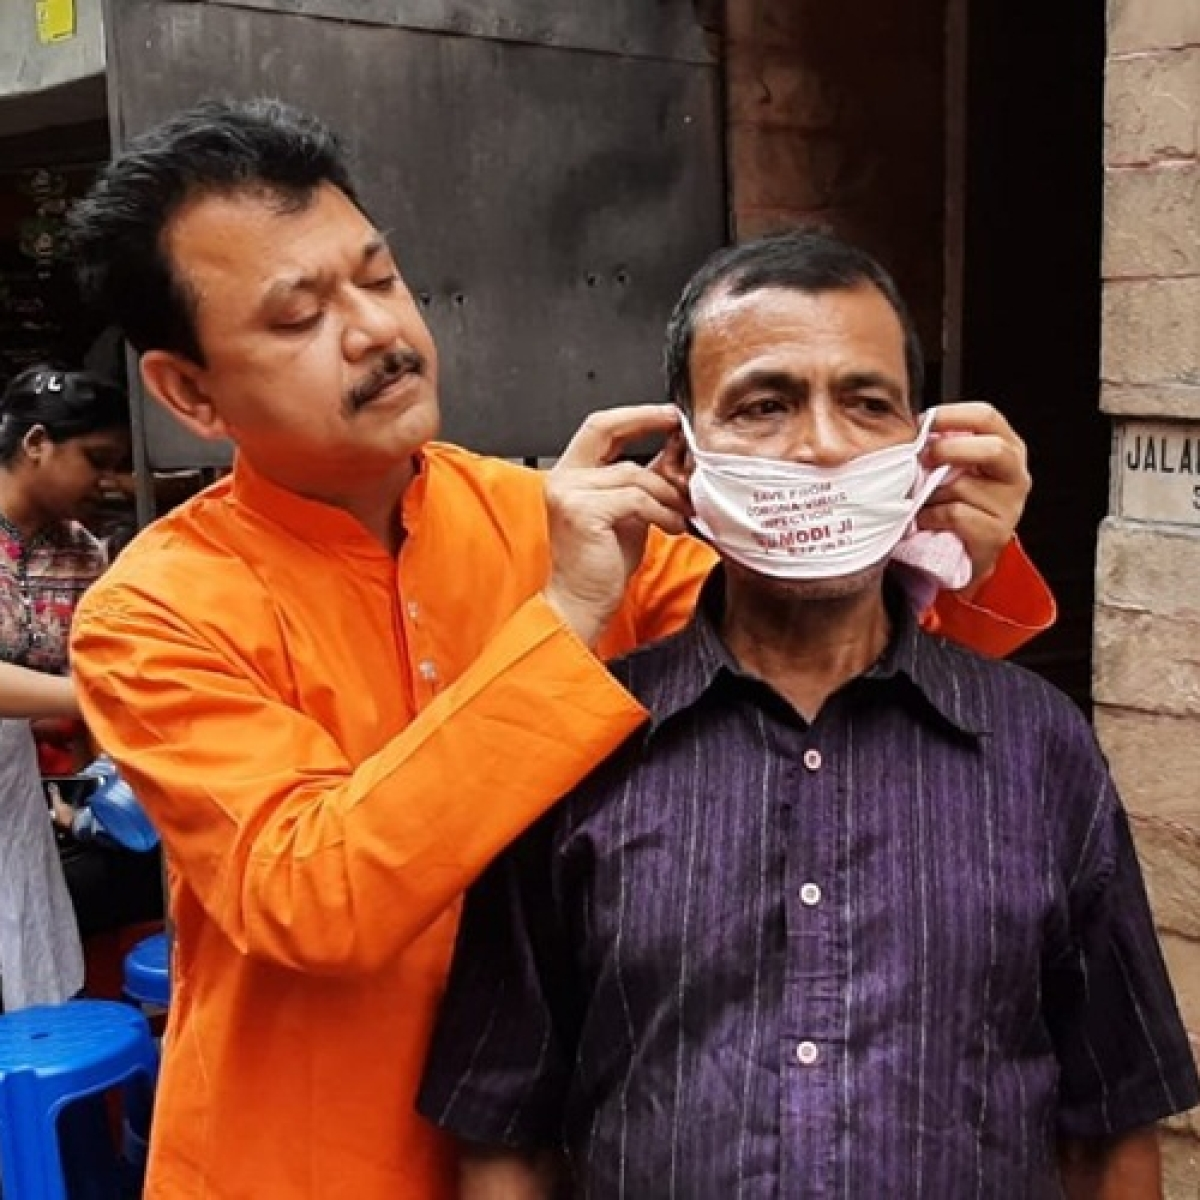 Commas matter: West Bengal BJP leader distributes masks with 'save us from coronavirus infection Modiji' message; gets trolled